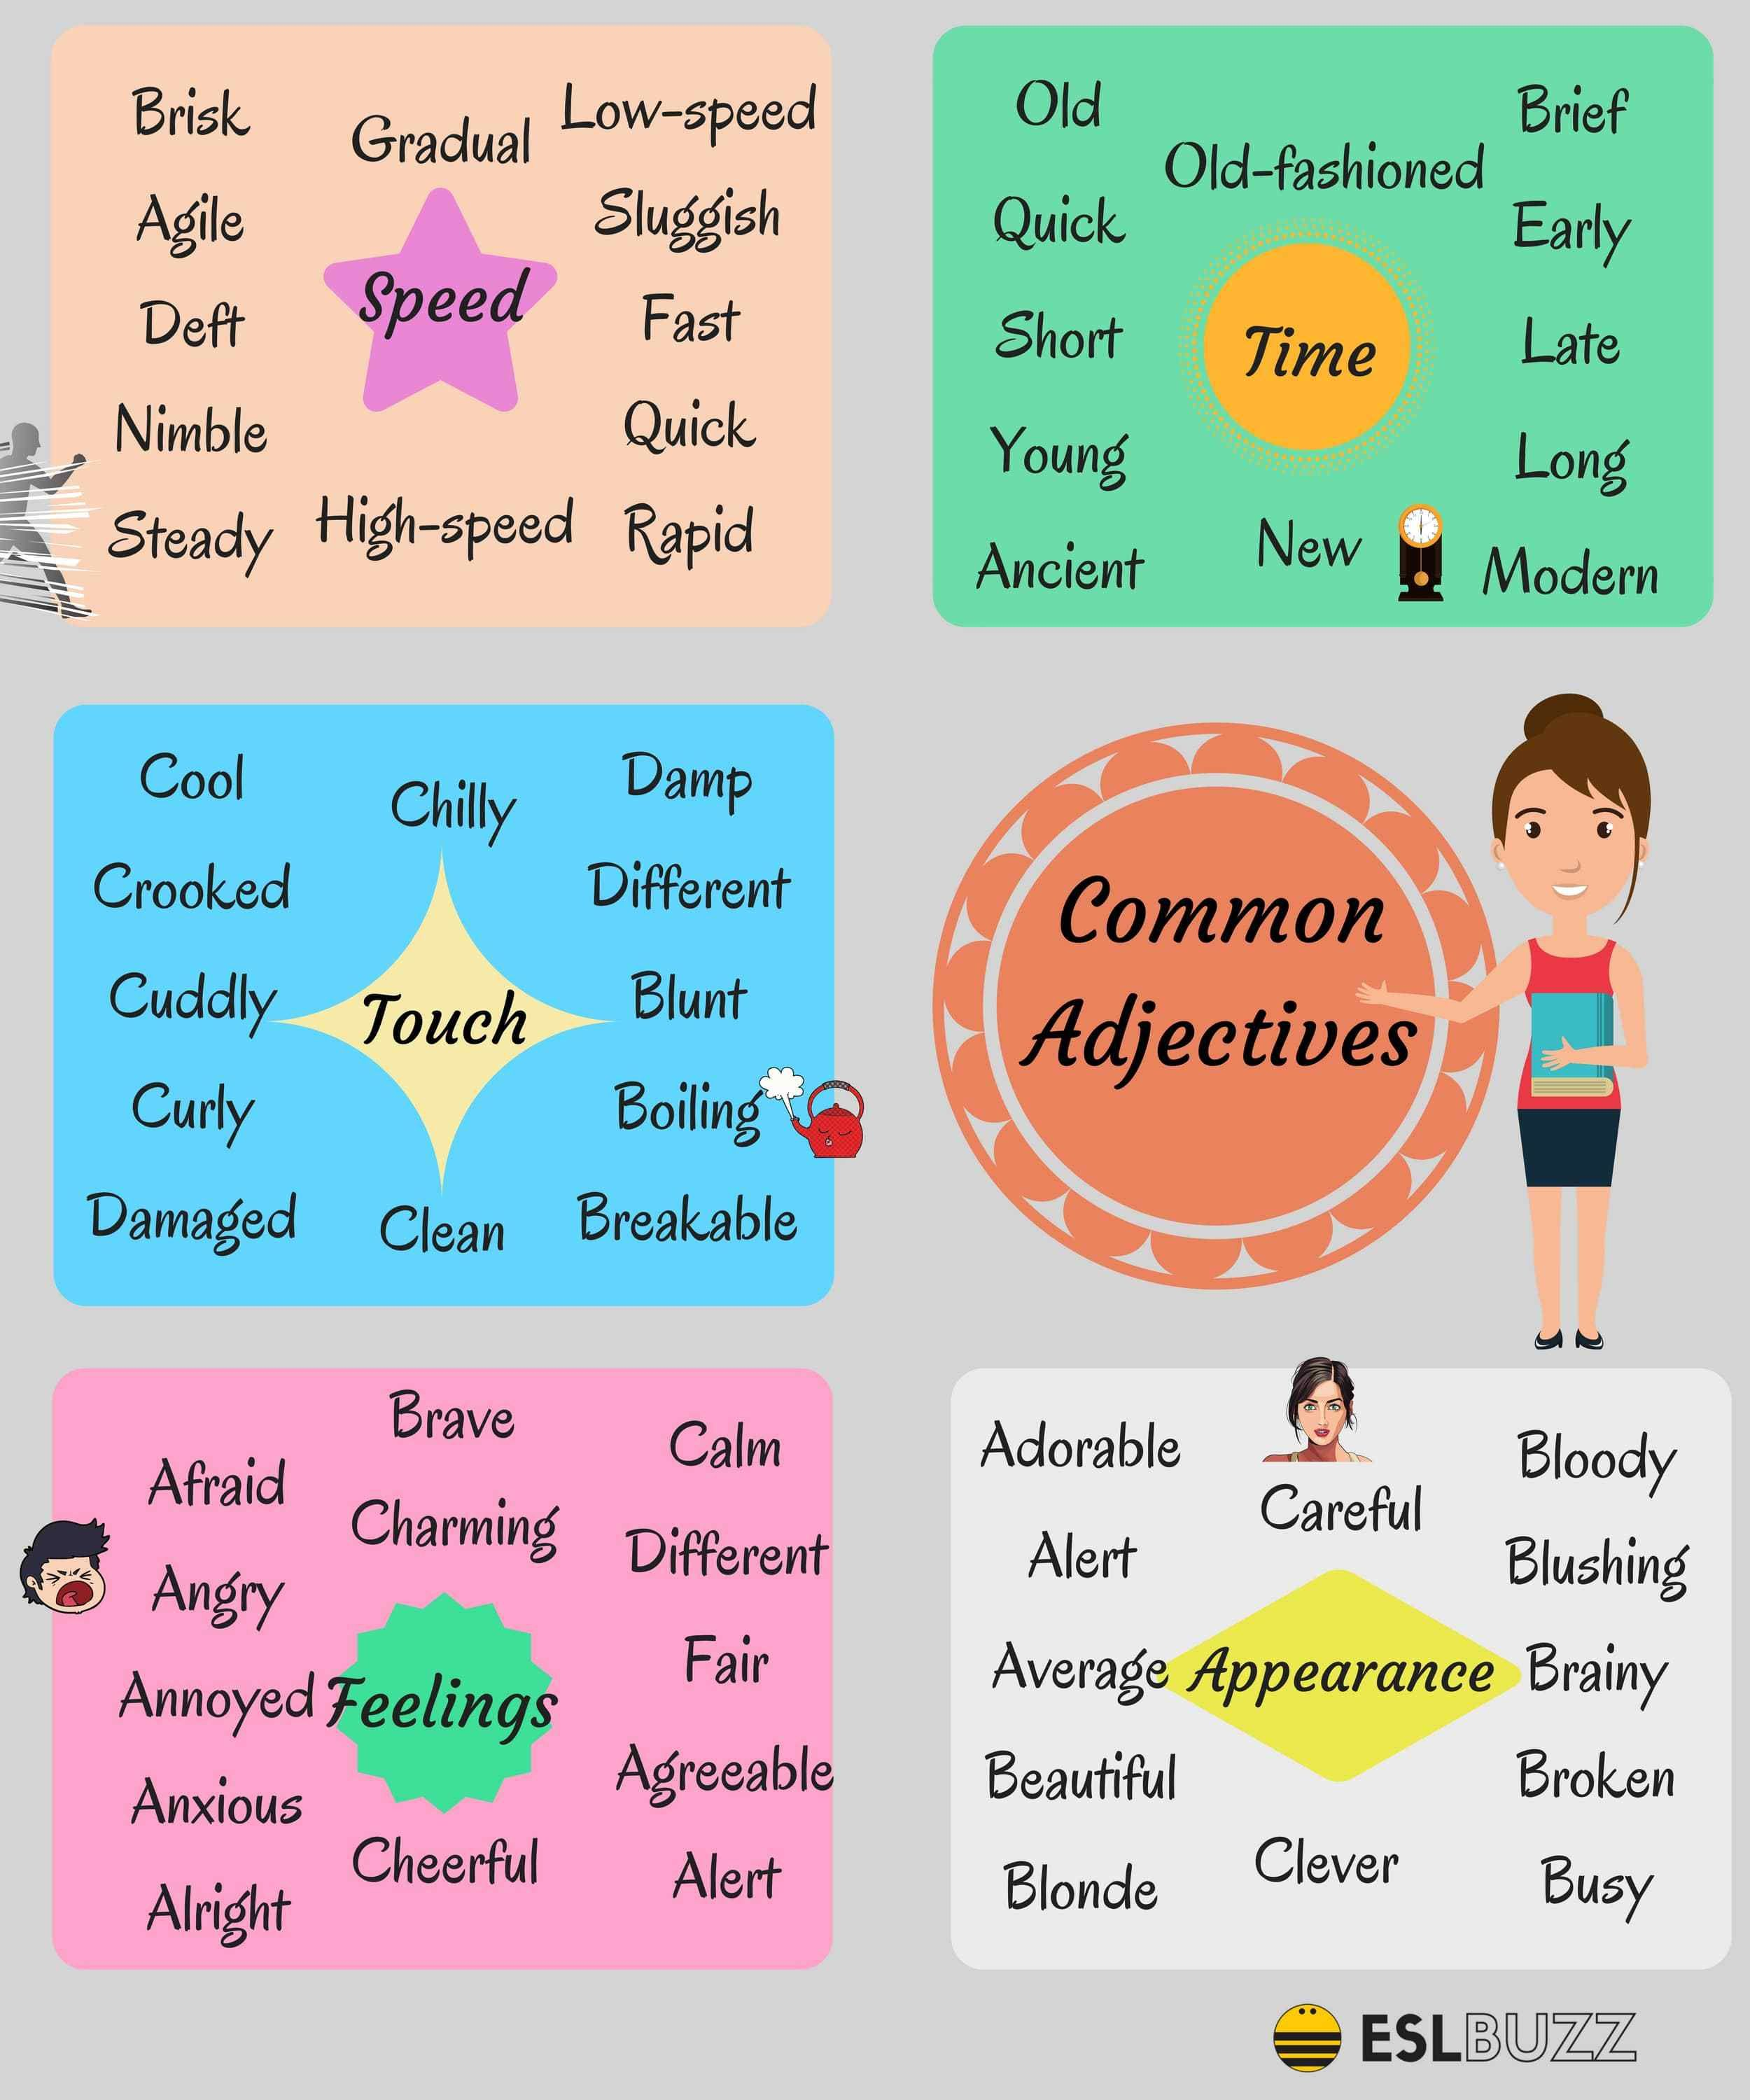 Adjectives With A: Adjectives That Start With A - Z